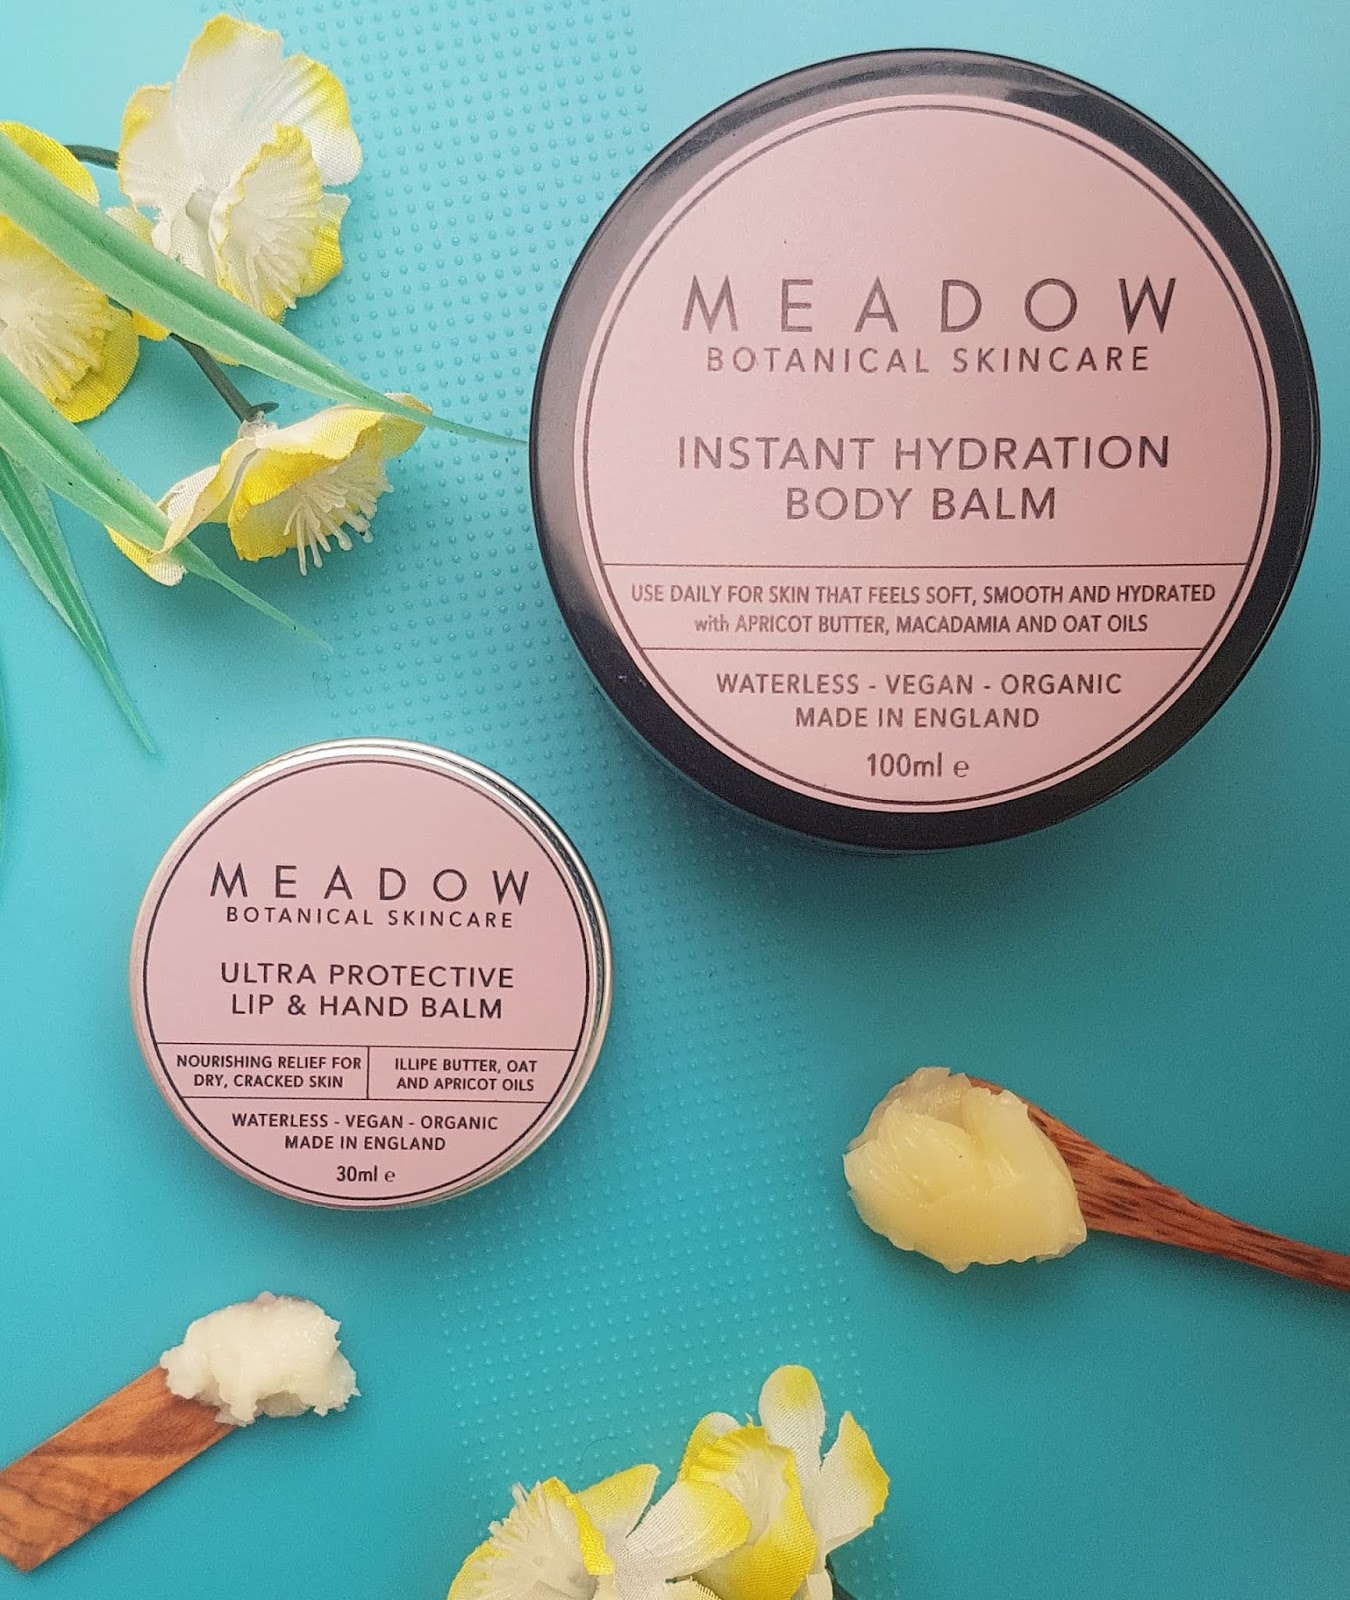 Meadow Skincare Review - Ultra Protecting lip & hand balm, Instant Hydration Body Balm